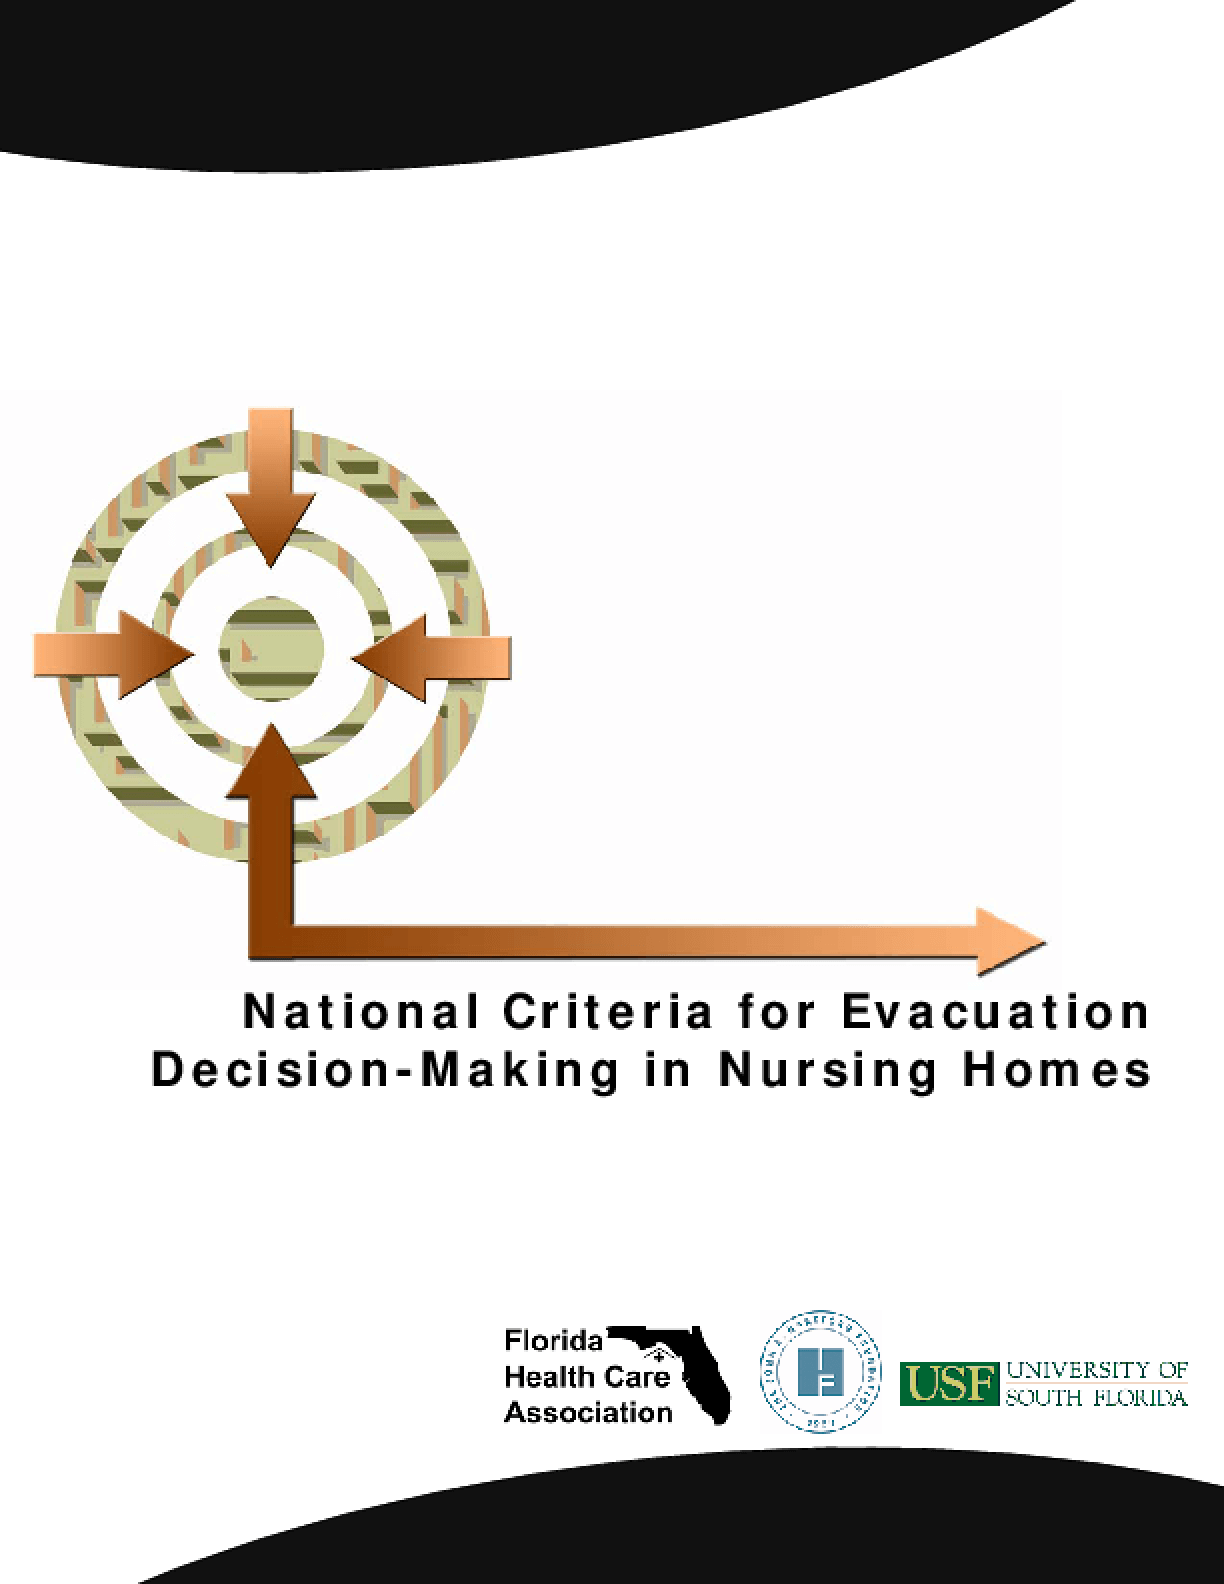 The National Criteria for Evacuation Decision-Making in Nursing Homes